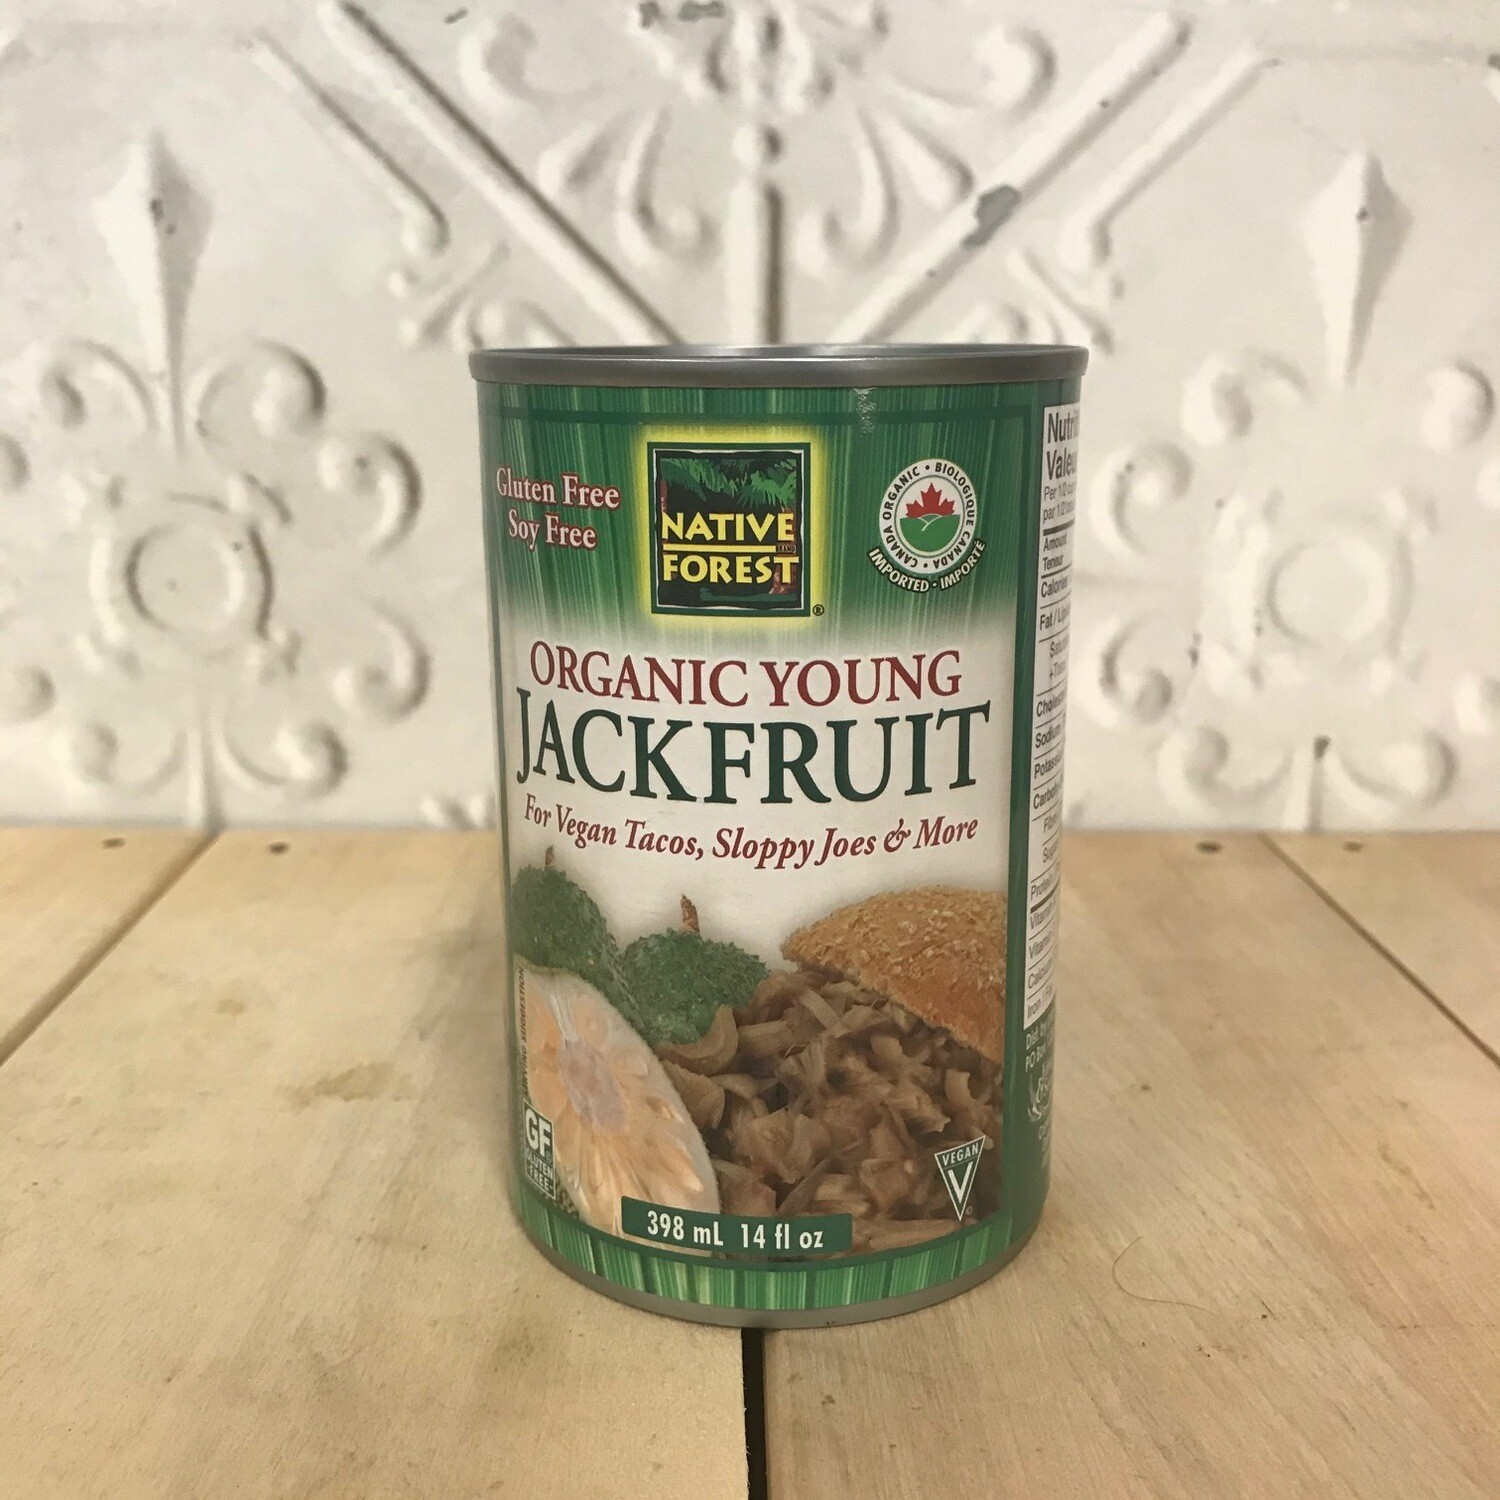 NATIVE FOREST Young Jackfruit Organic 398mL